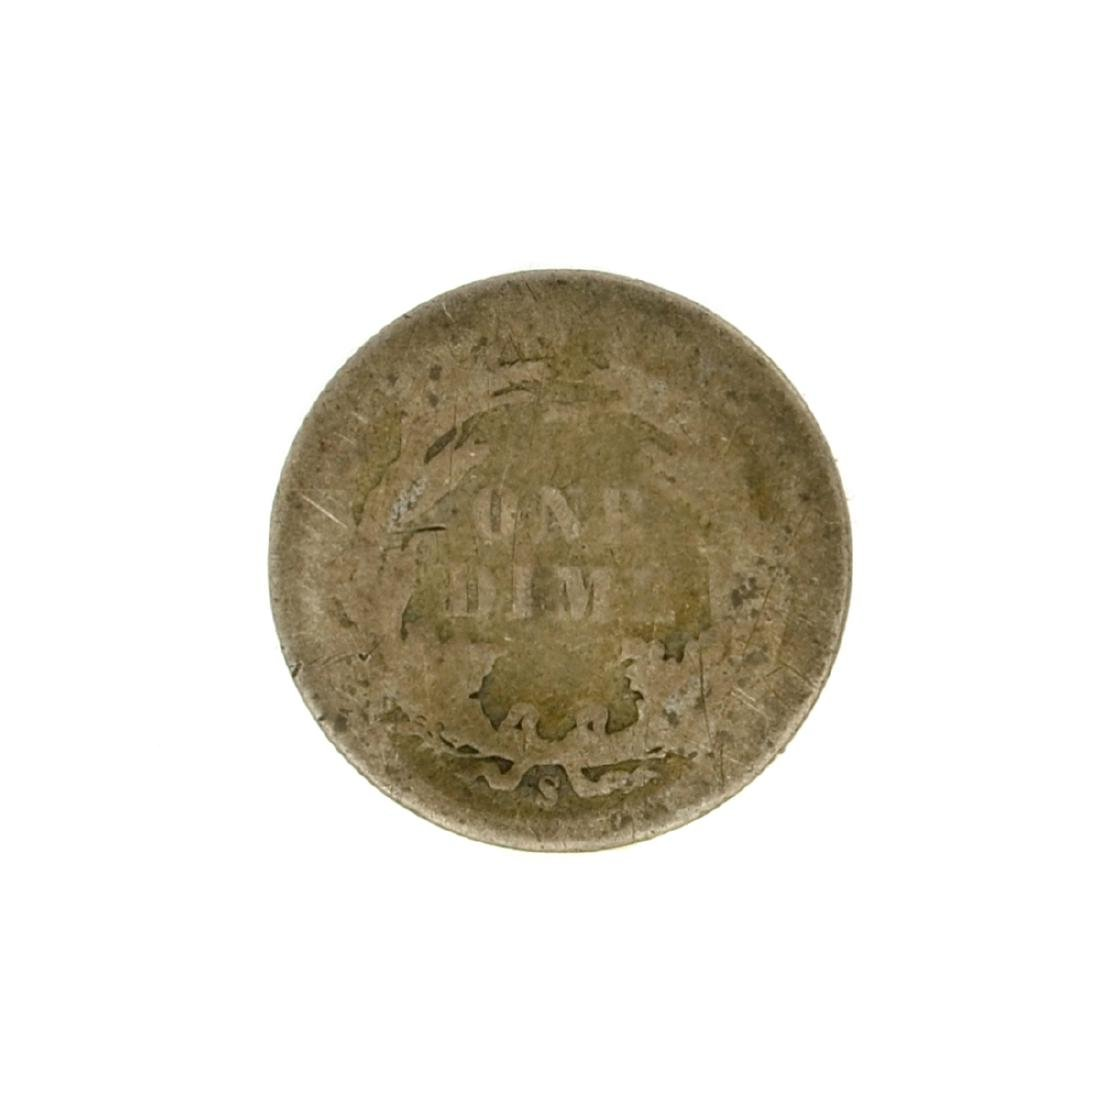 1887-S Liberty Seated Dime Coin - 2